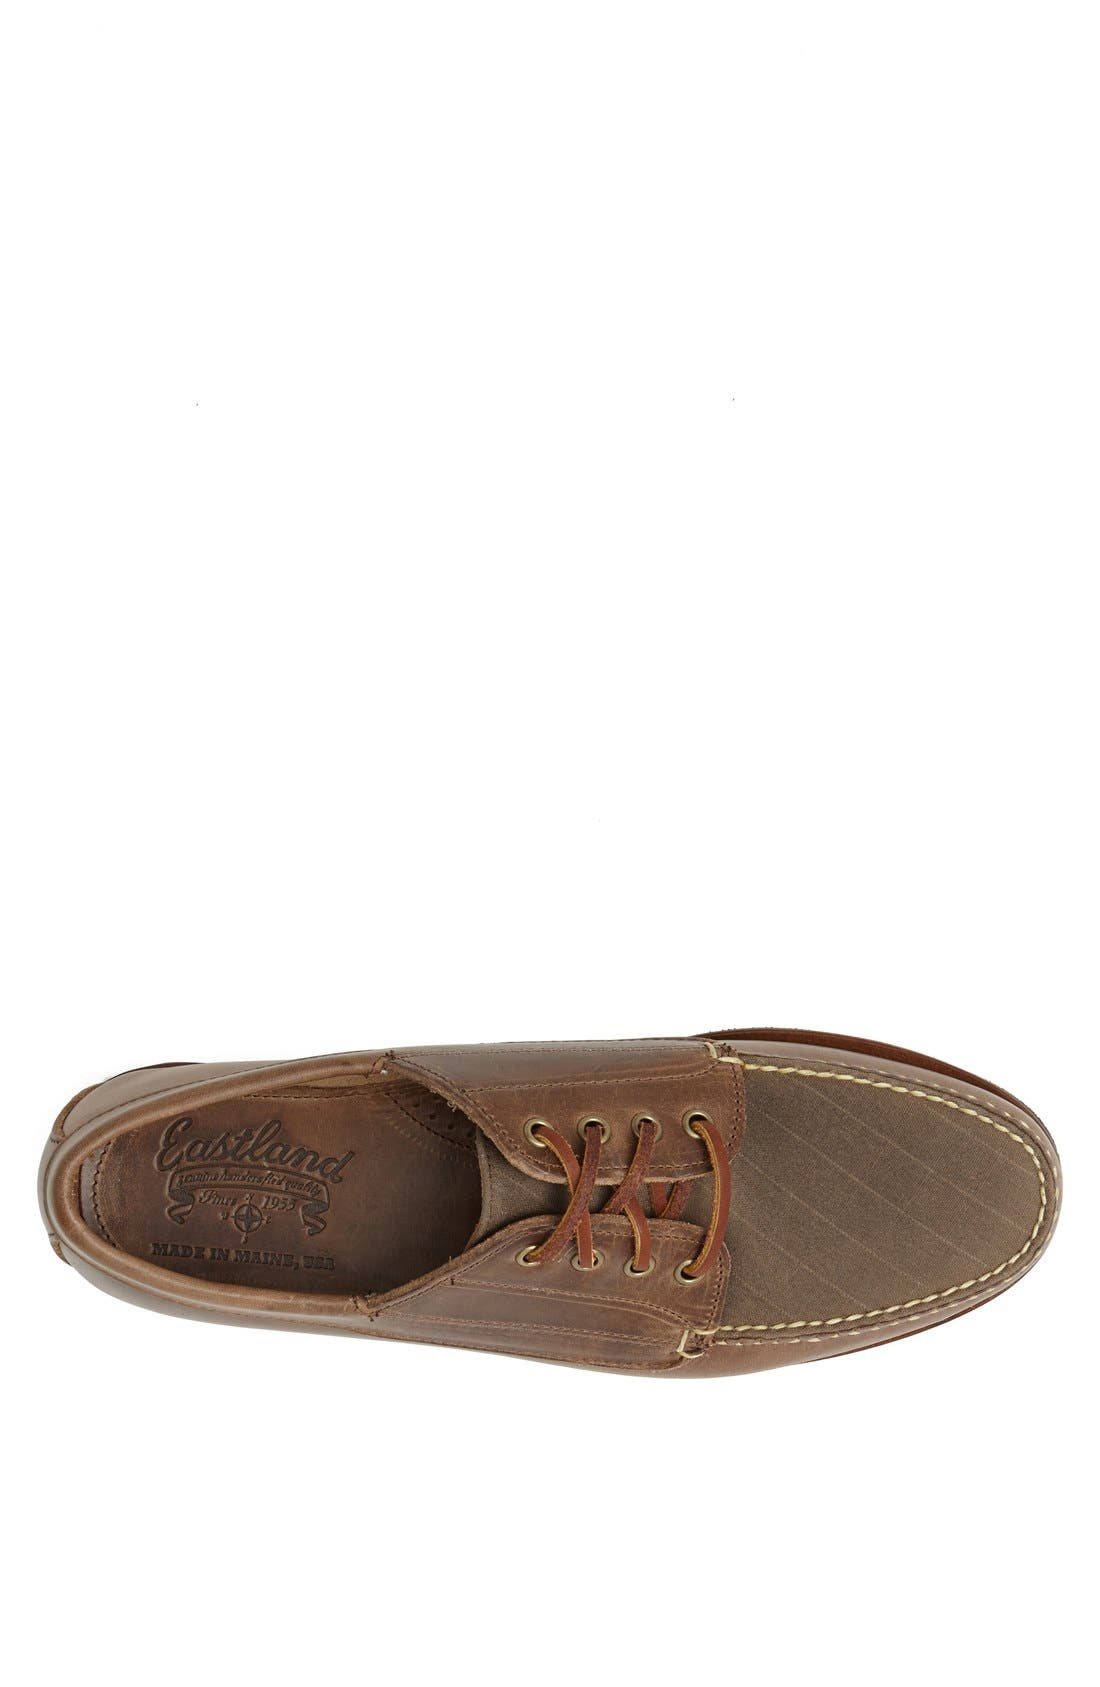 Alternate Image 3  - Eastland Made in Maine 'Falmouth USA' Boat Shoe